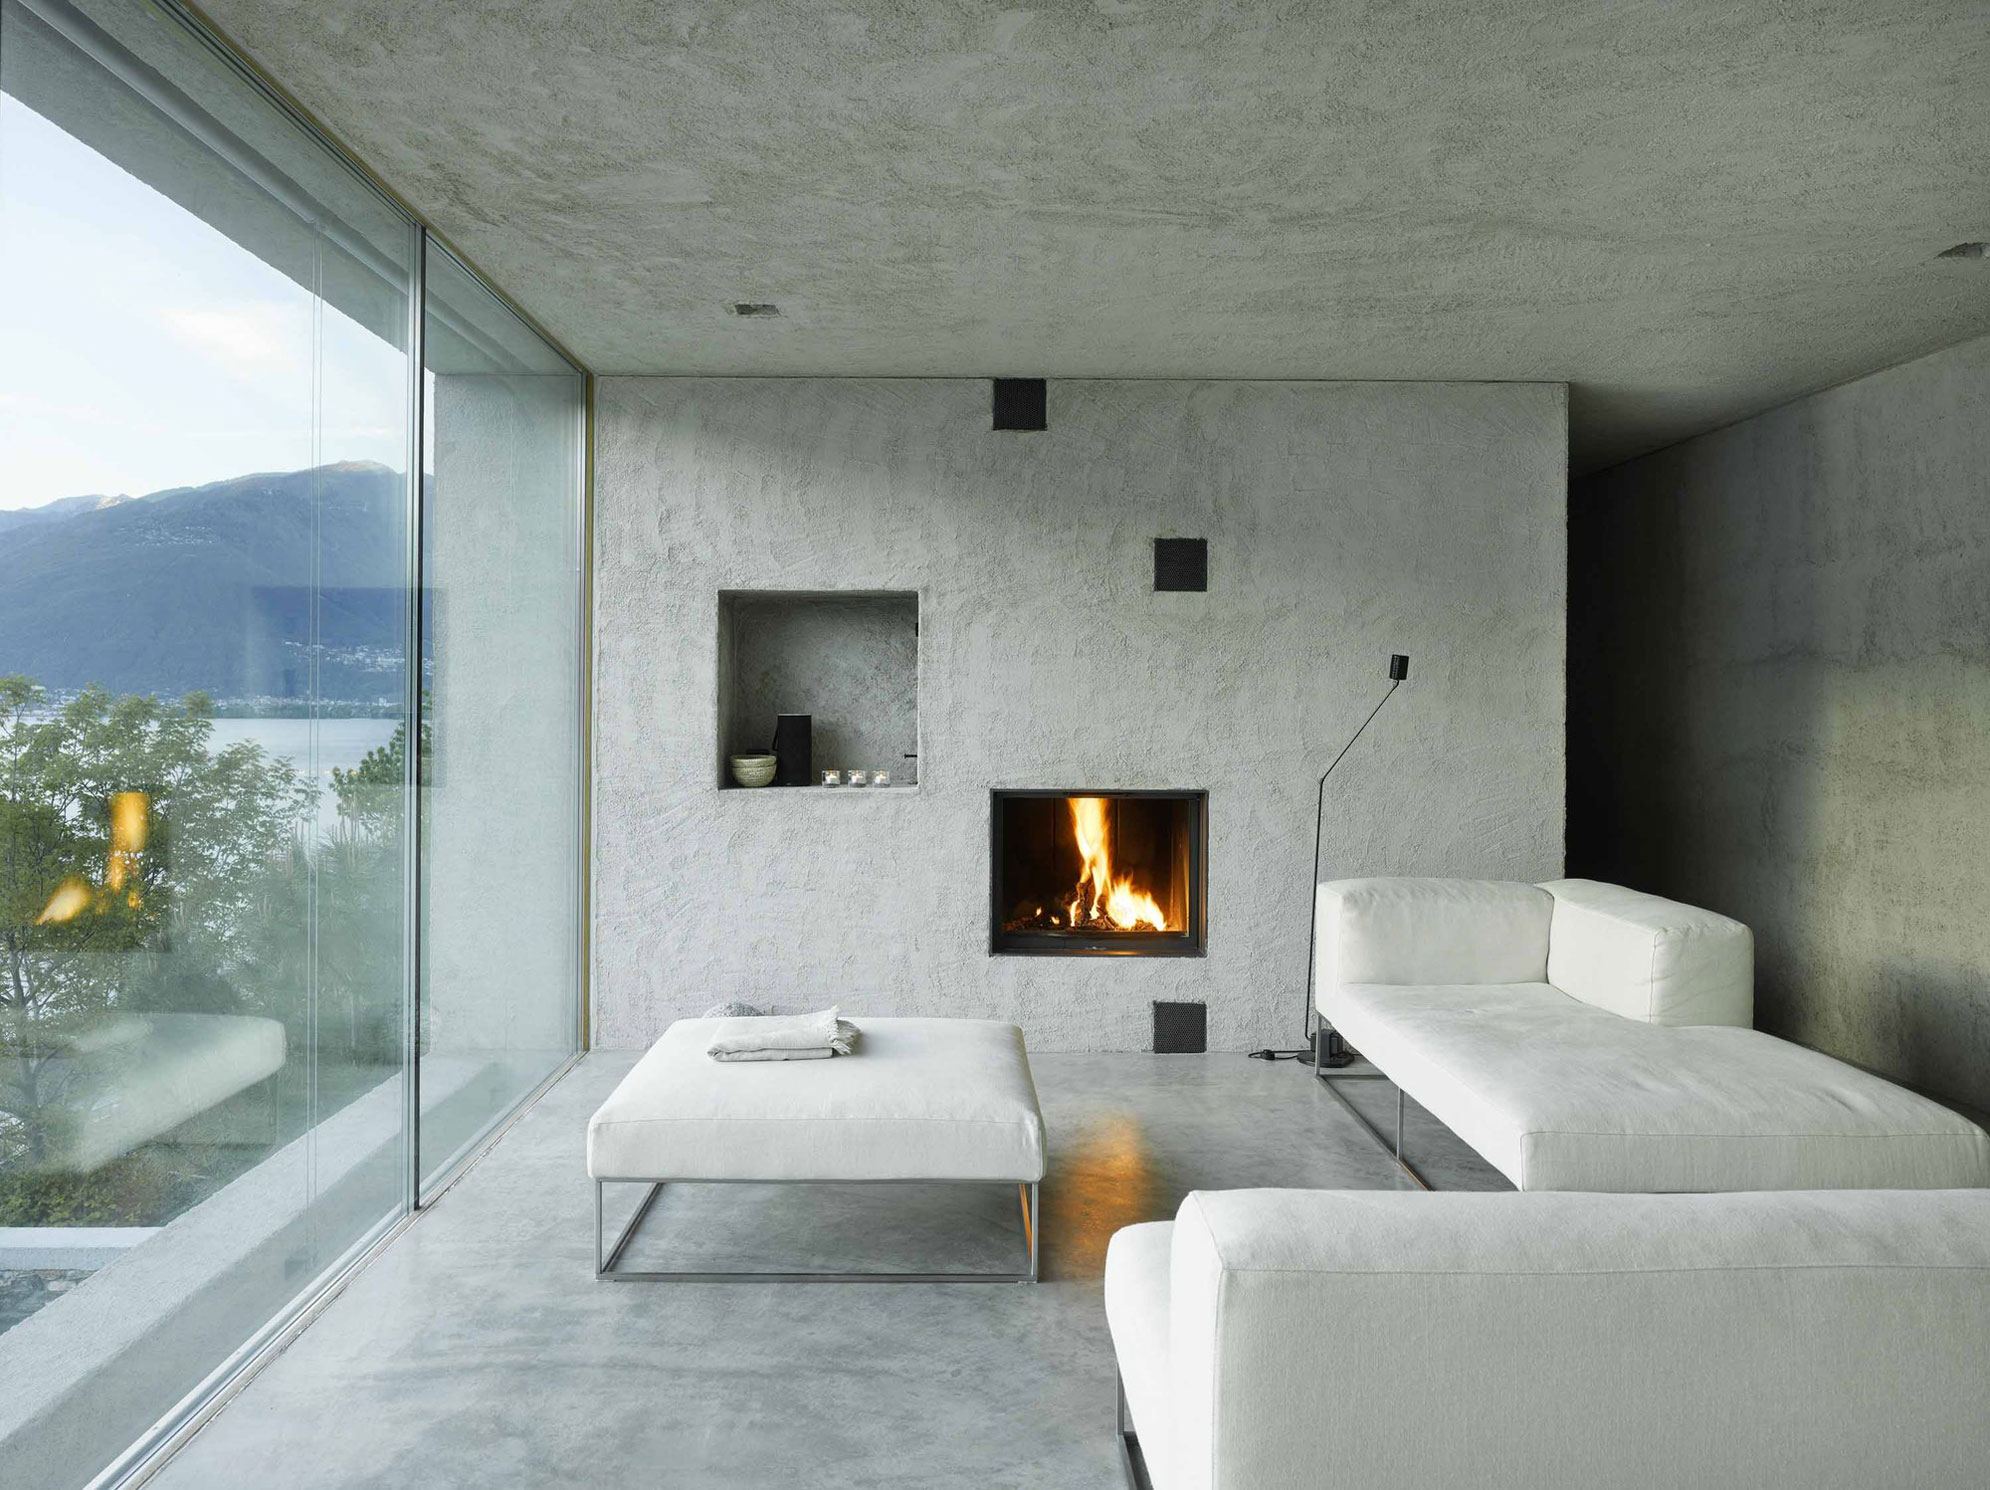 House-in-Ranzo-10